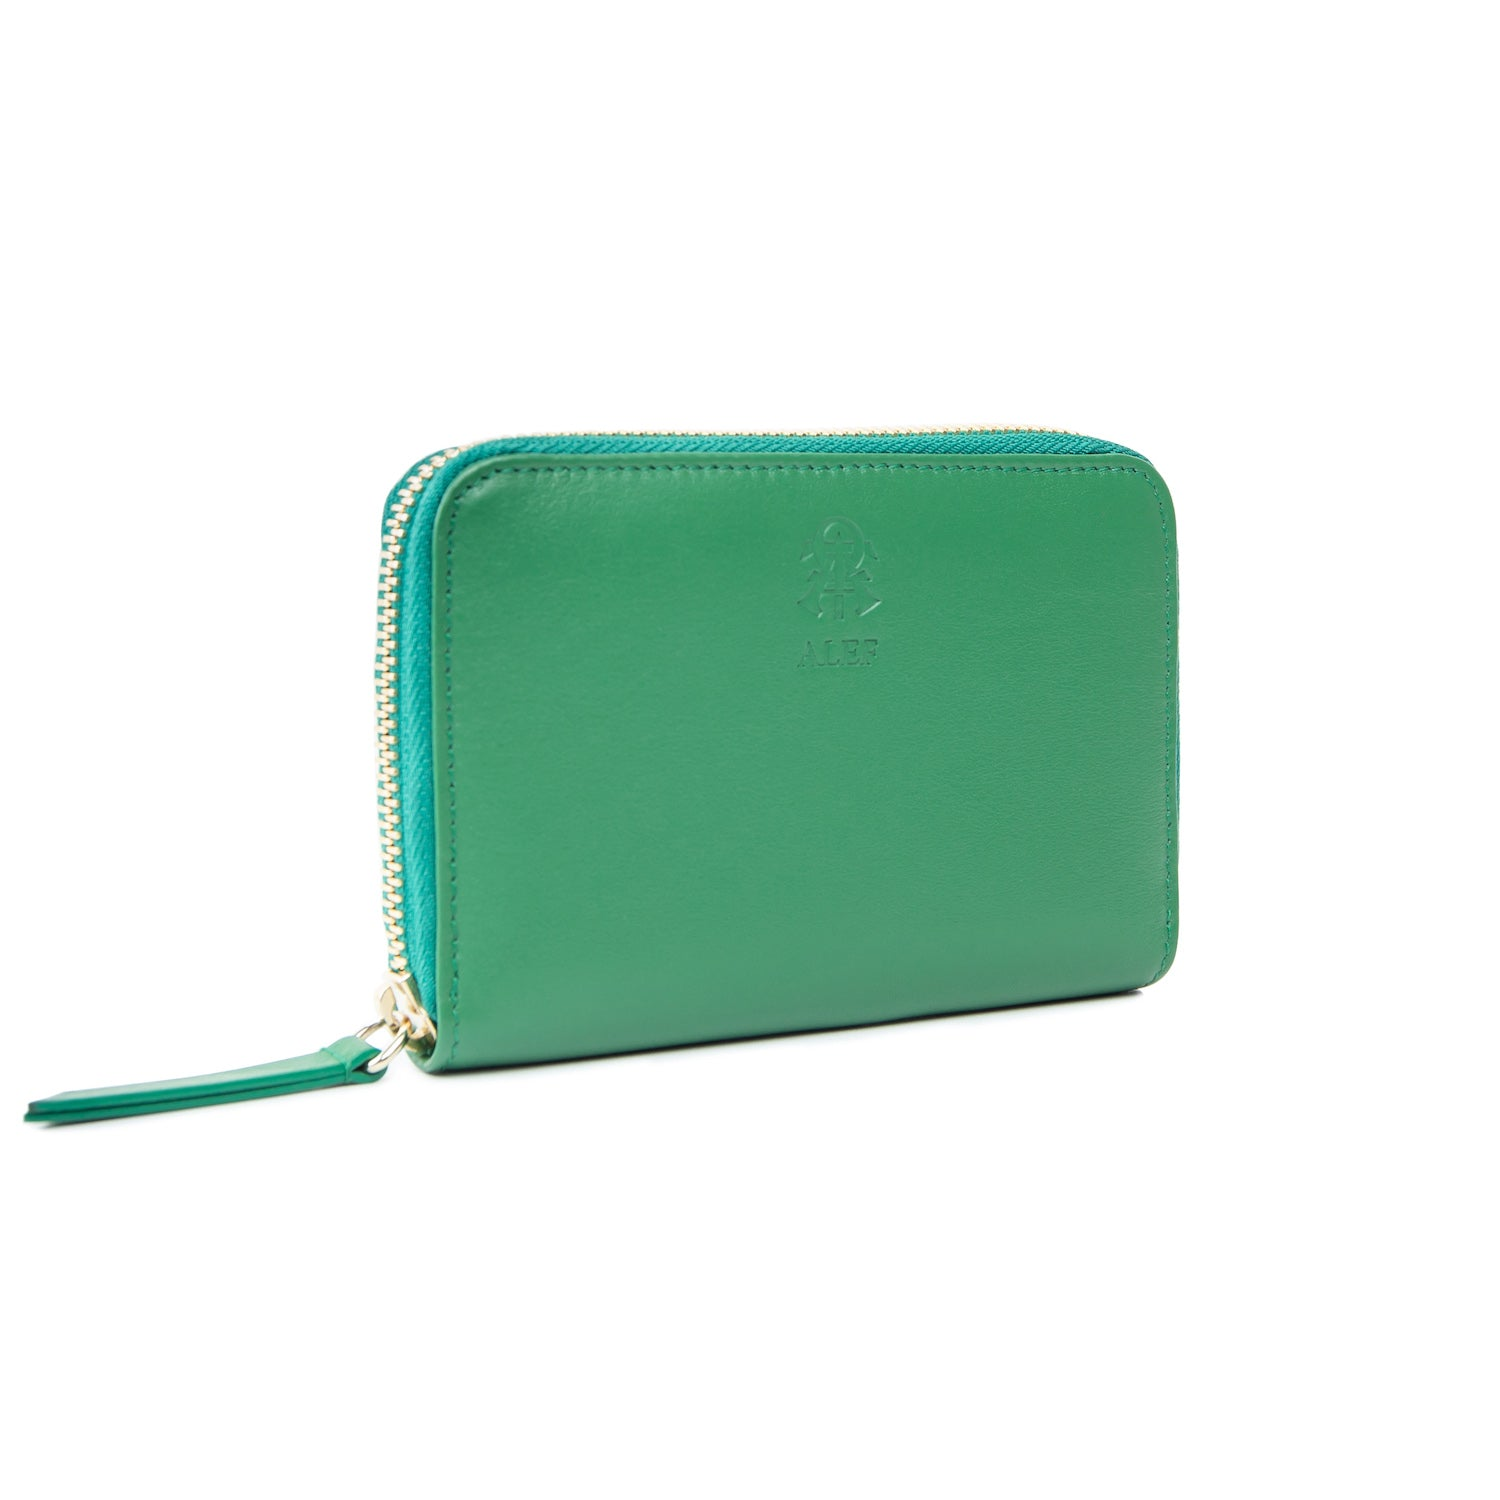 Purse - Zip Around Woman Small